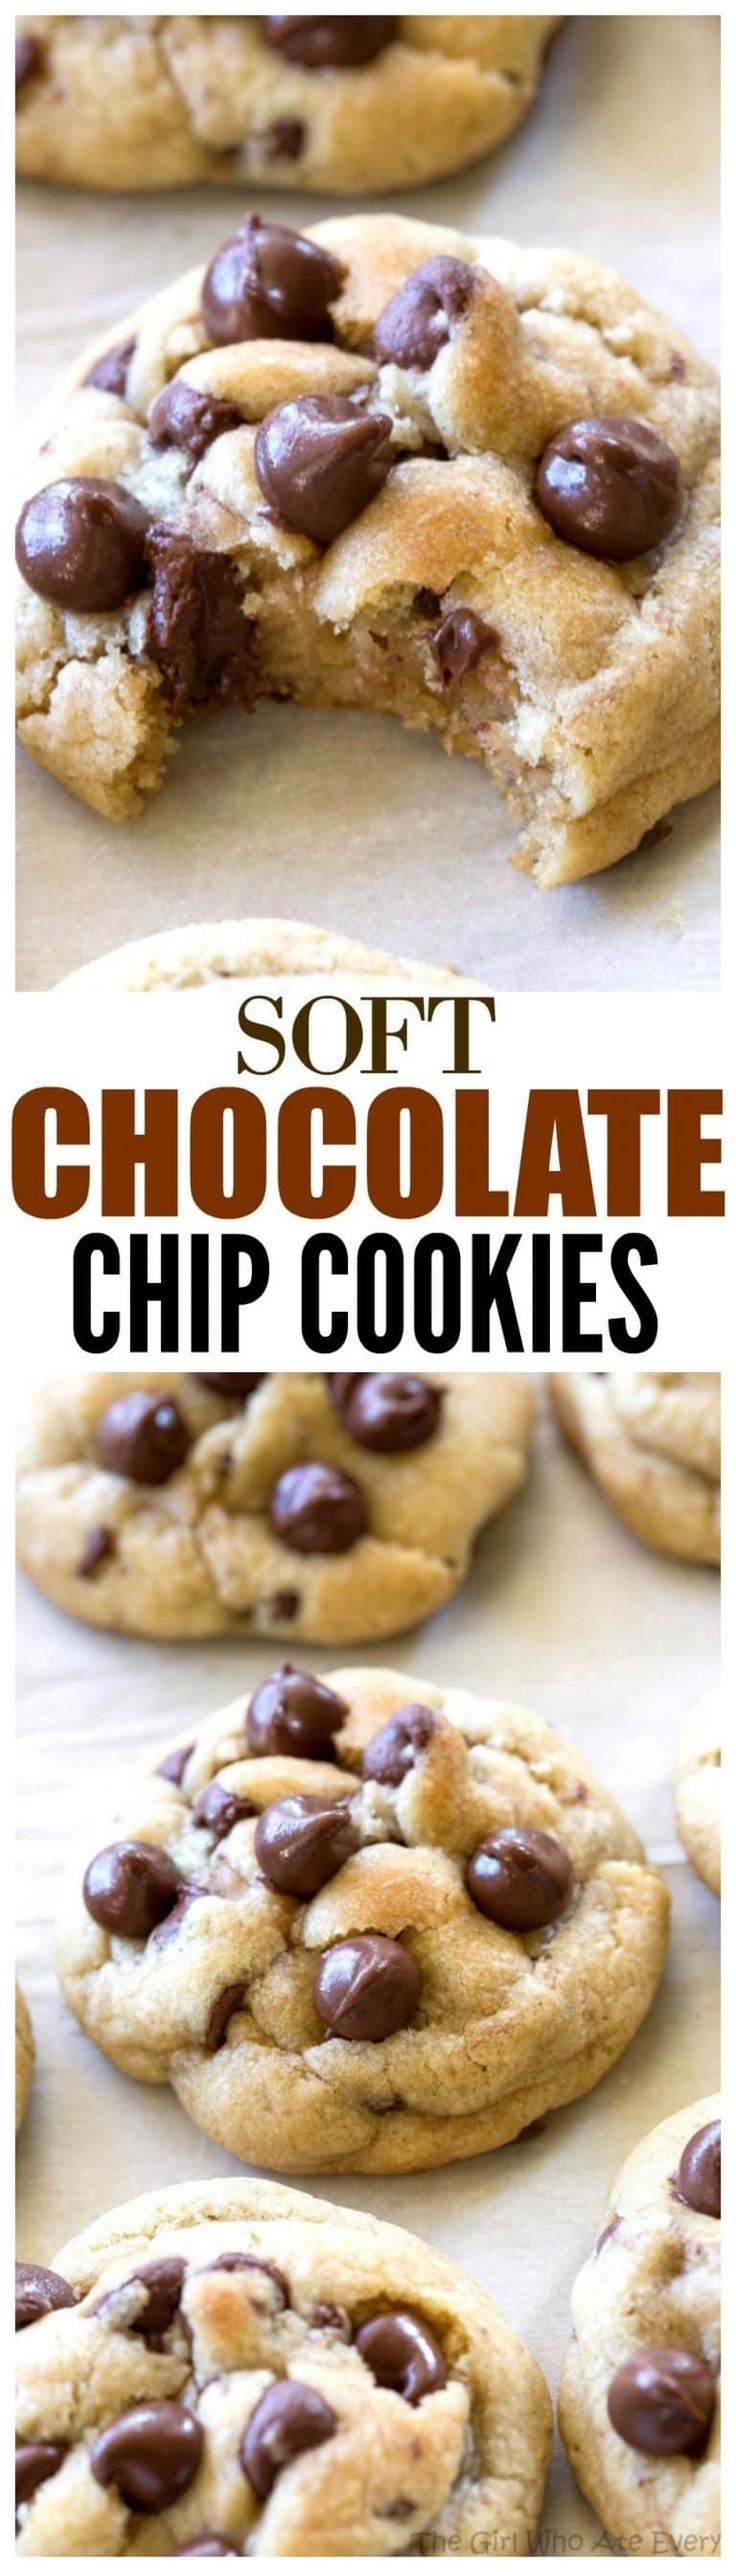 Soft Chocolate Chip Cookies – Food: Cakes & Sweets